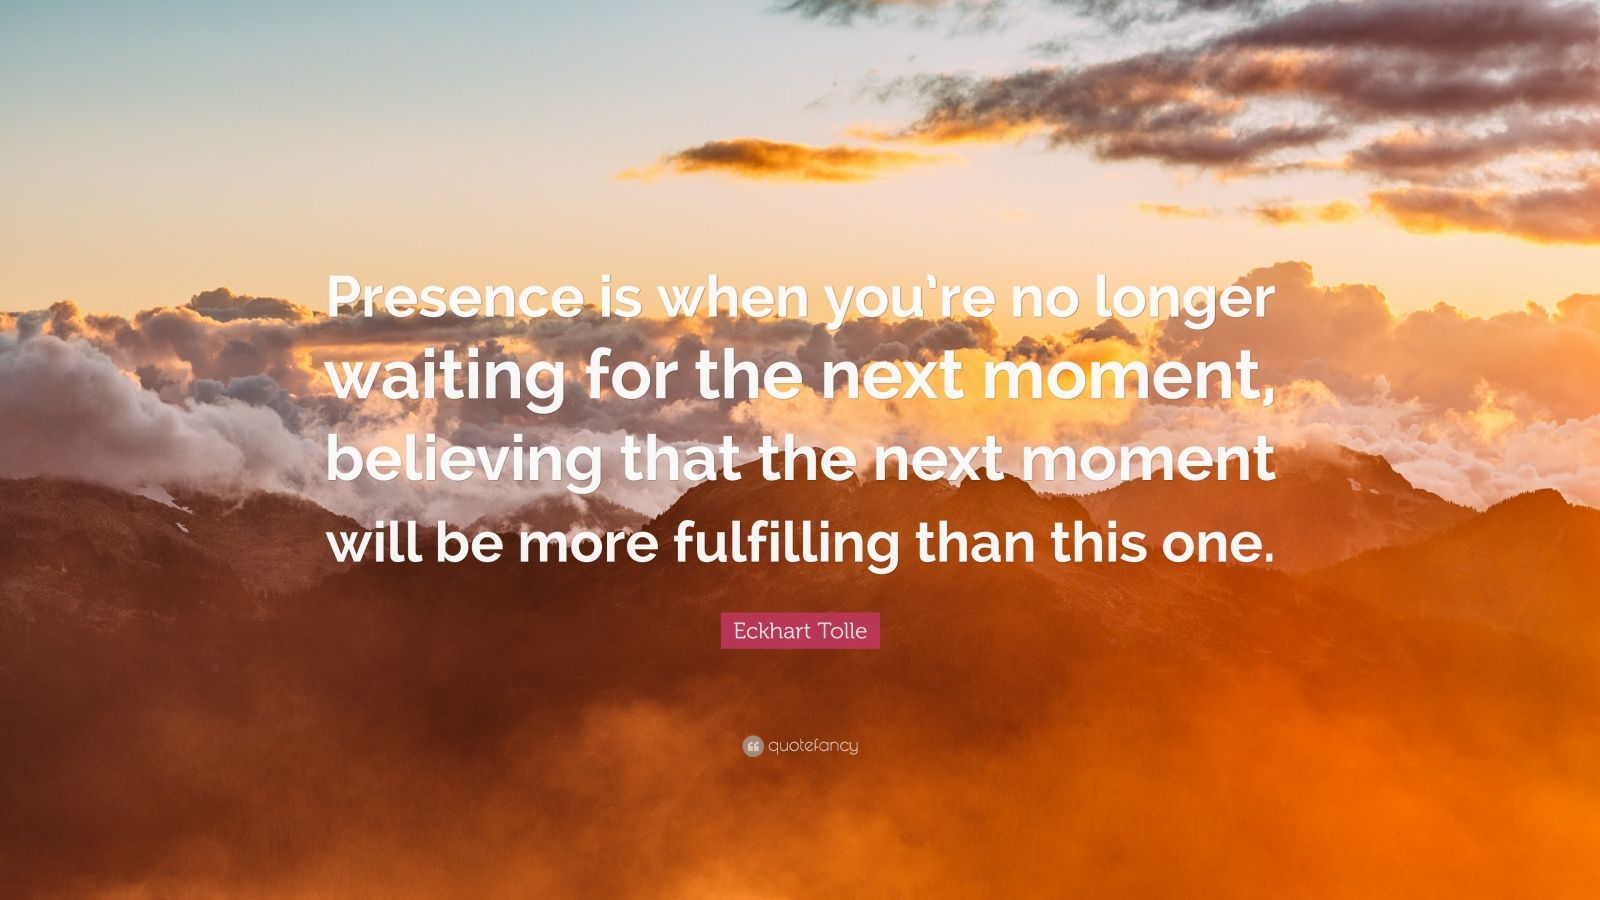 """Eckhart Tolle Quote: """"Presence is when you're no longer waiting for the next moment, believing that the next moment will be more fulfilling than this one."""""""